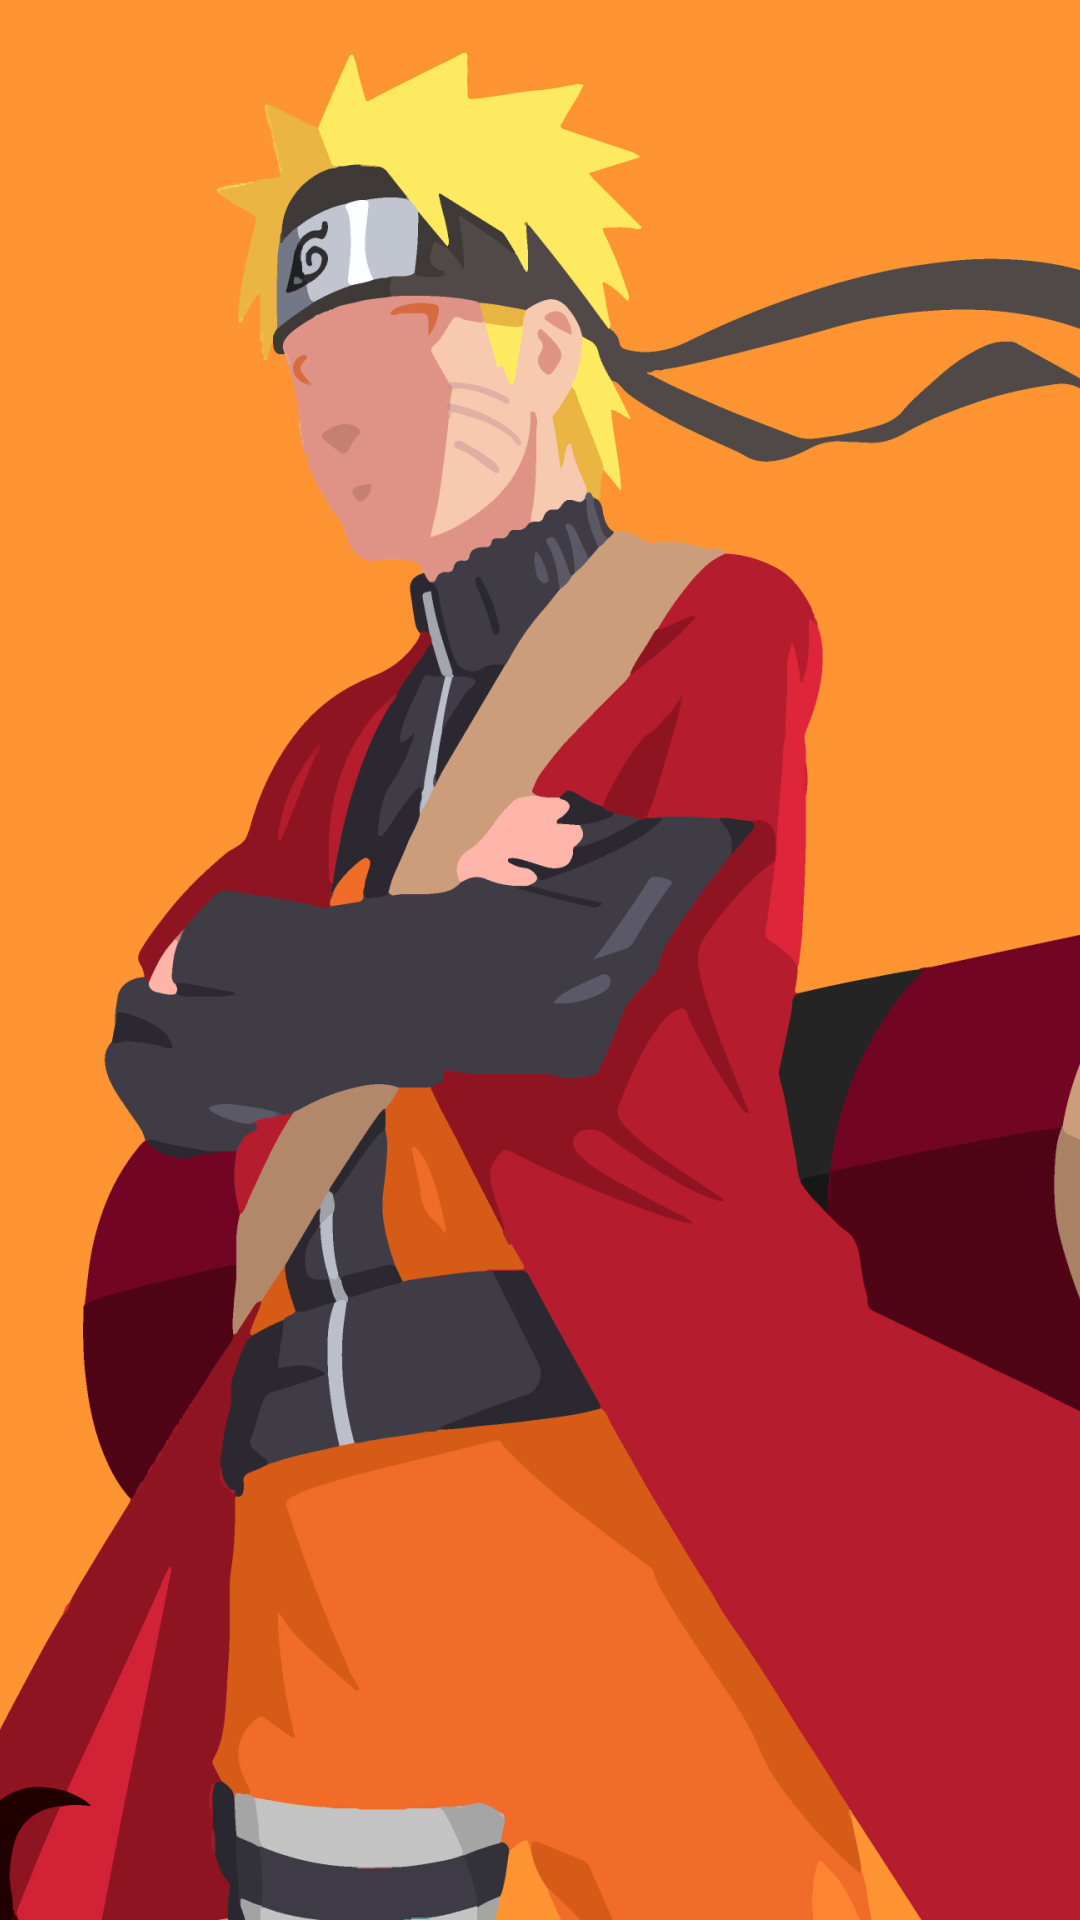 1080x1920 Hokage Naruto 4K Iphone 7, 6s, 6 Plus and Pixel ...